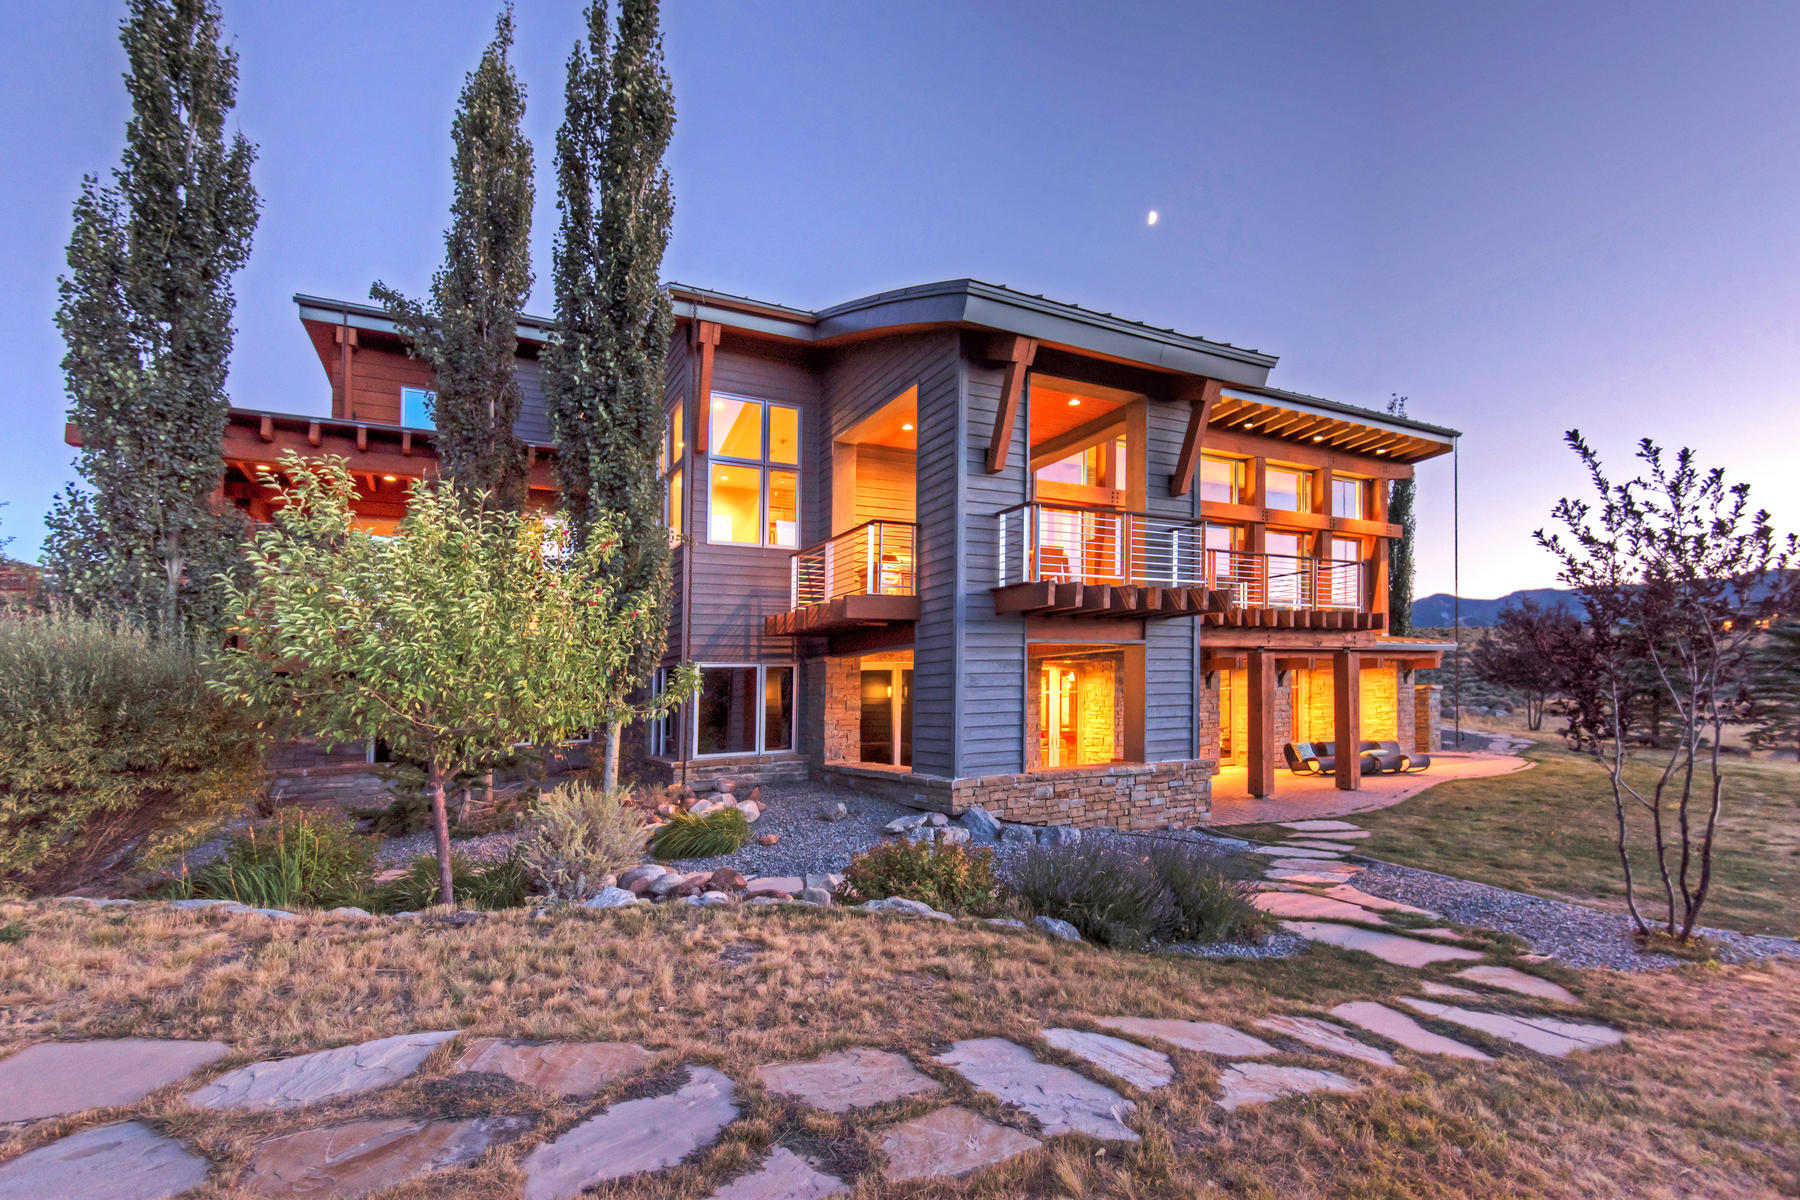 Moradia para Venda às Contemporary Glenwild Dream Home 575 Mountain Holly Rd Park City, Utah, 84098 Estados Unidos